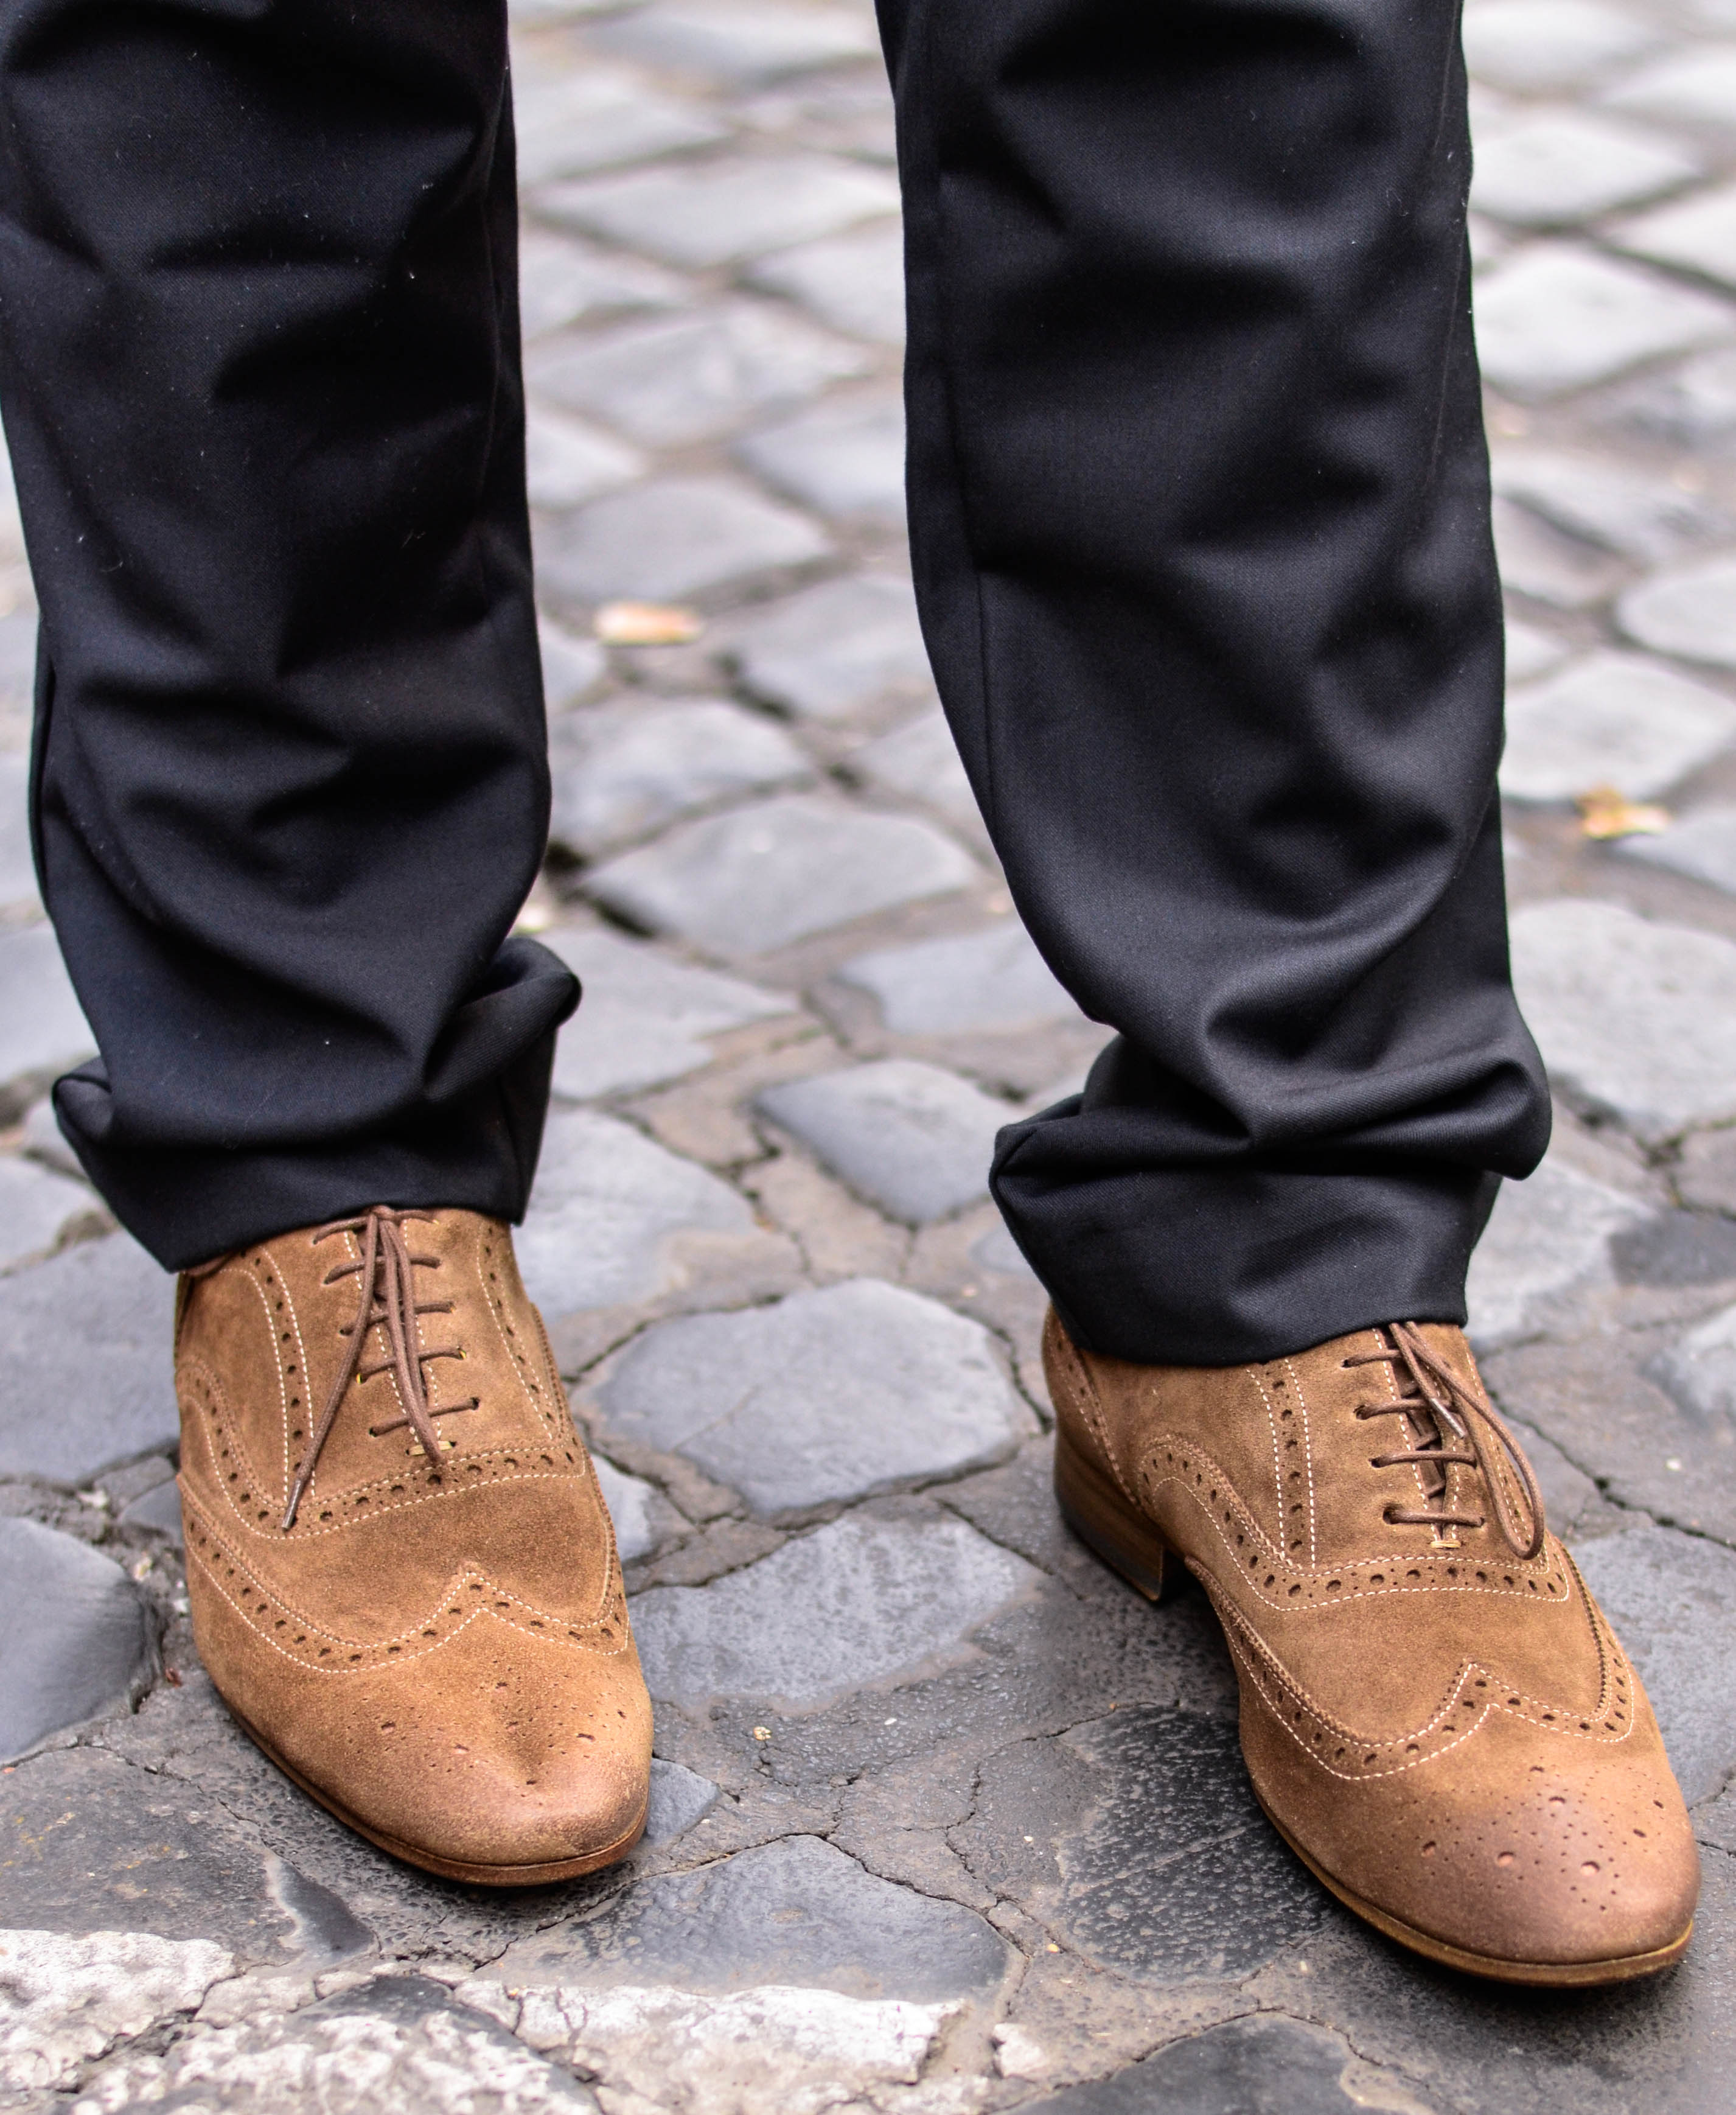 Conf Dasher In Rome Men S Shoes That Make A Big Fashion Statement Ps Paul